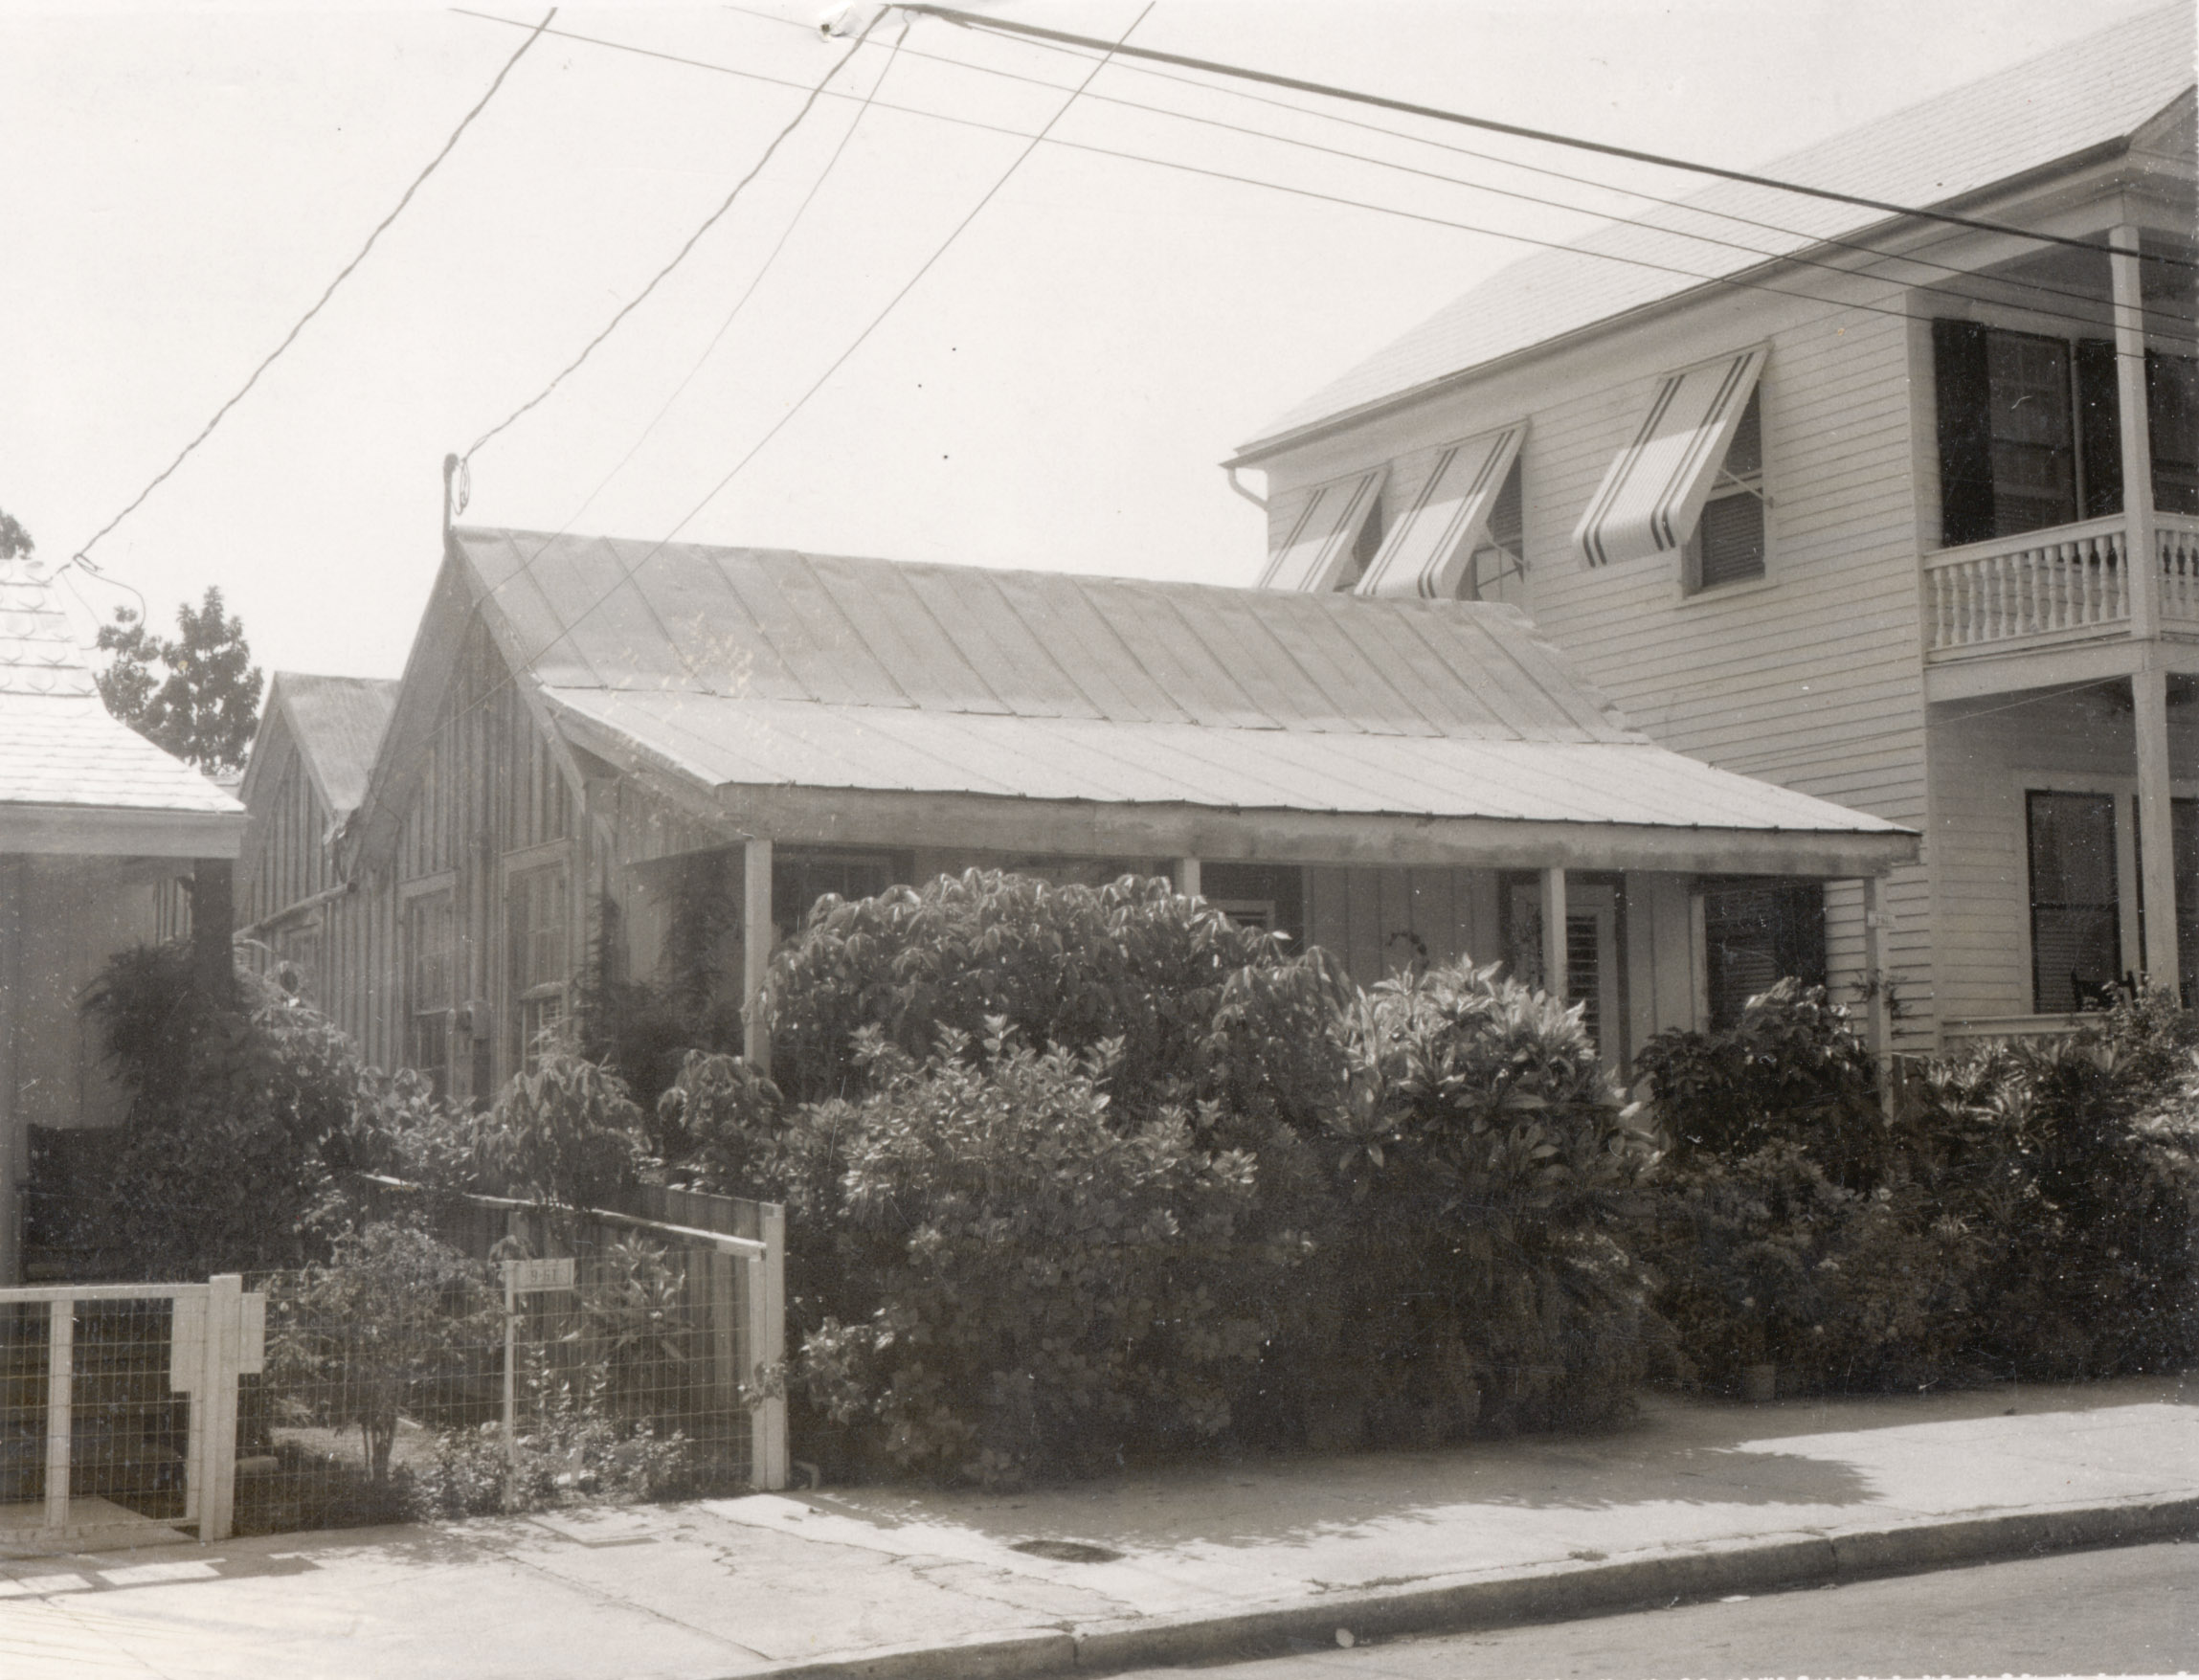 Photo taken by Prpoerty Appraiser's office c1965; 530 Grinnell Street; built 1923; Sqr 46, Pt Lot 1